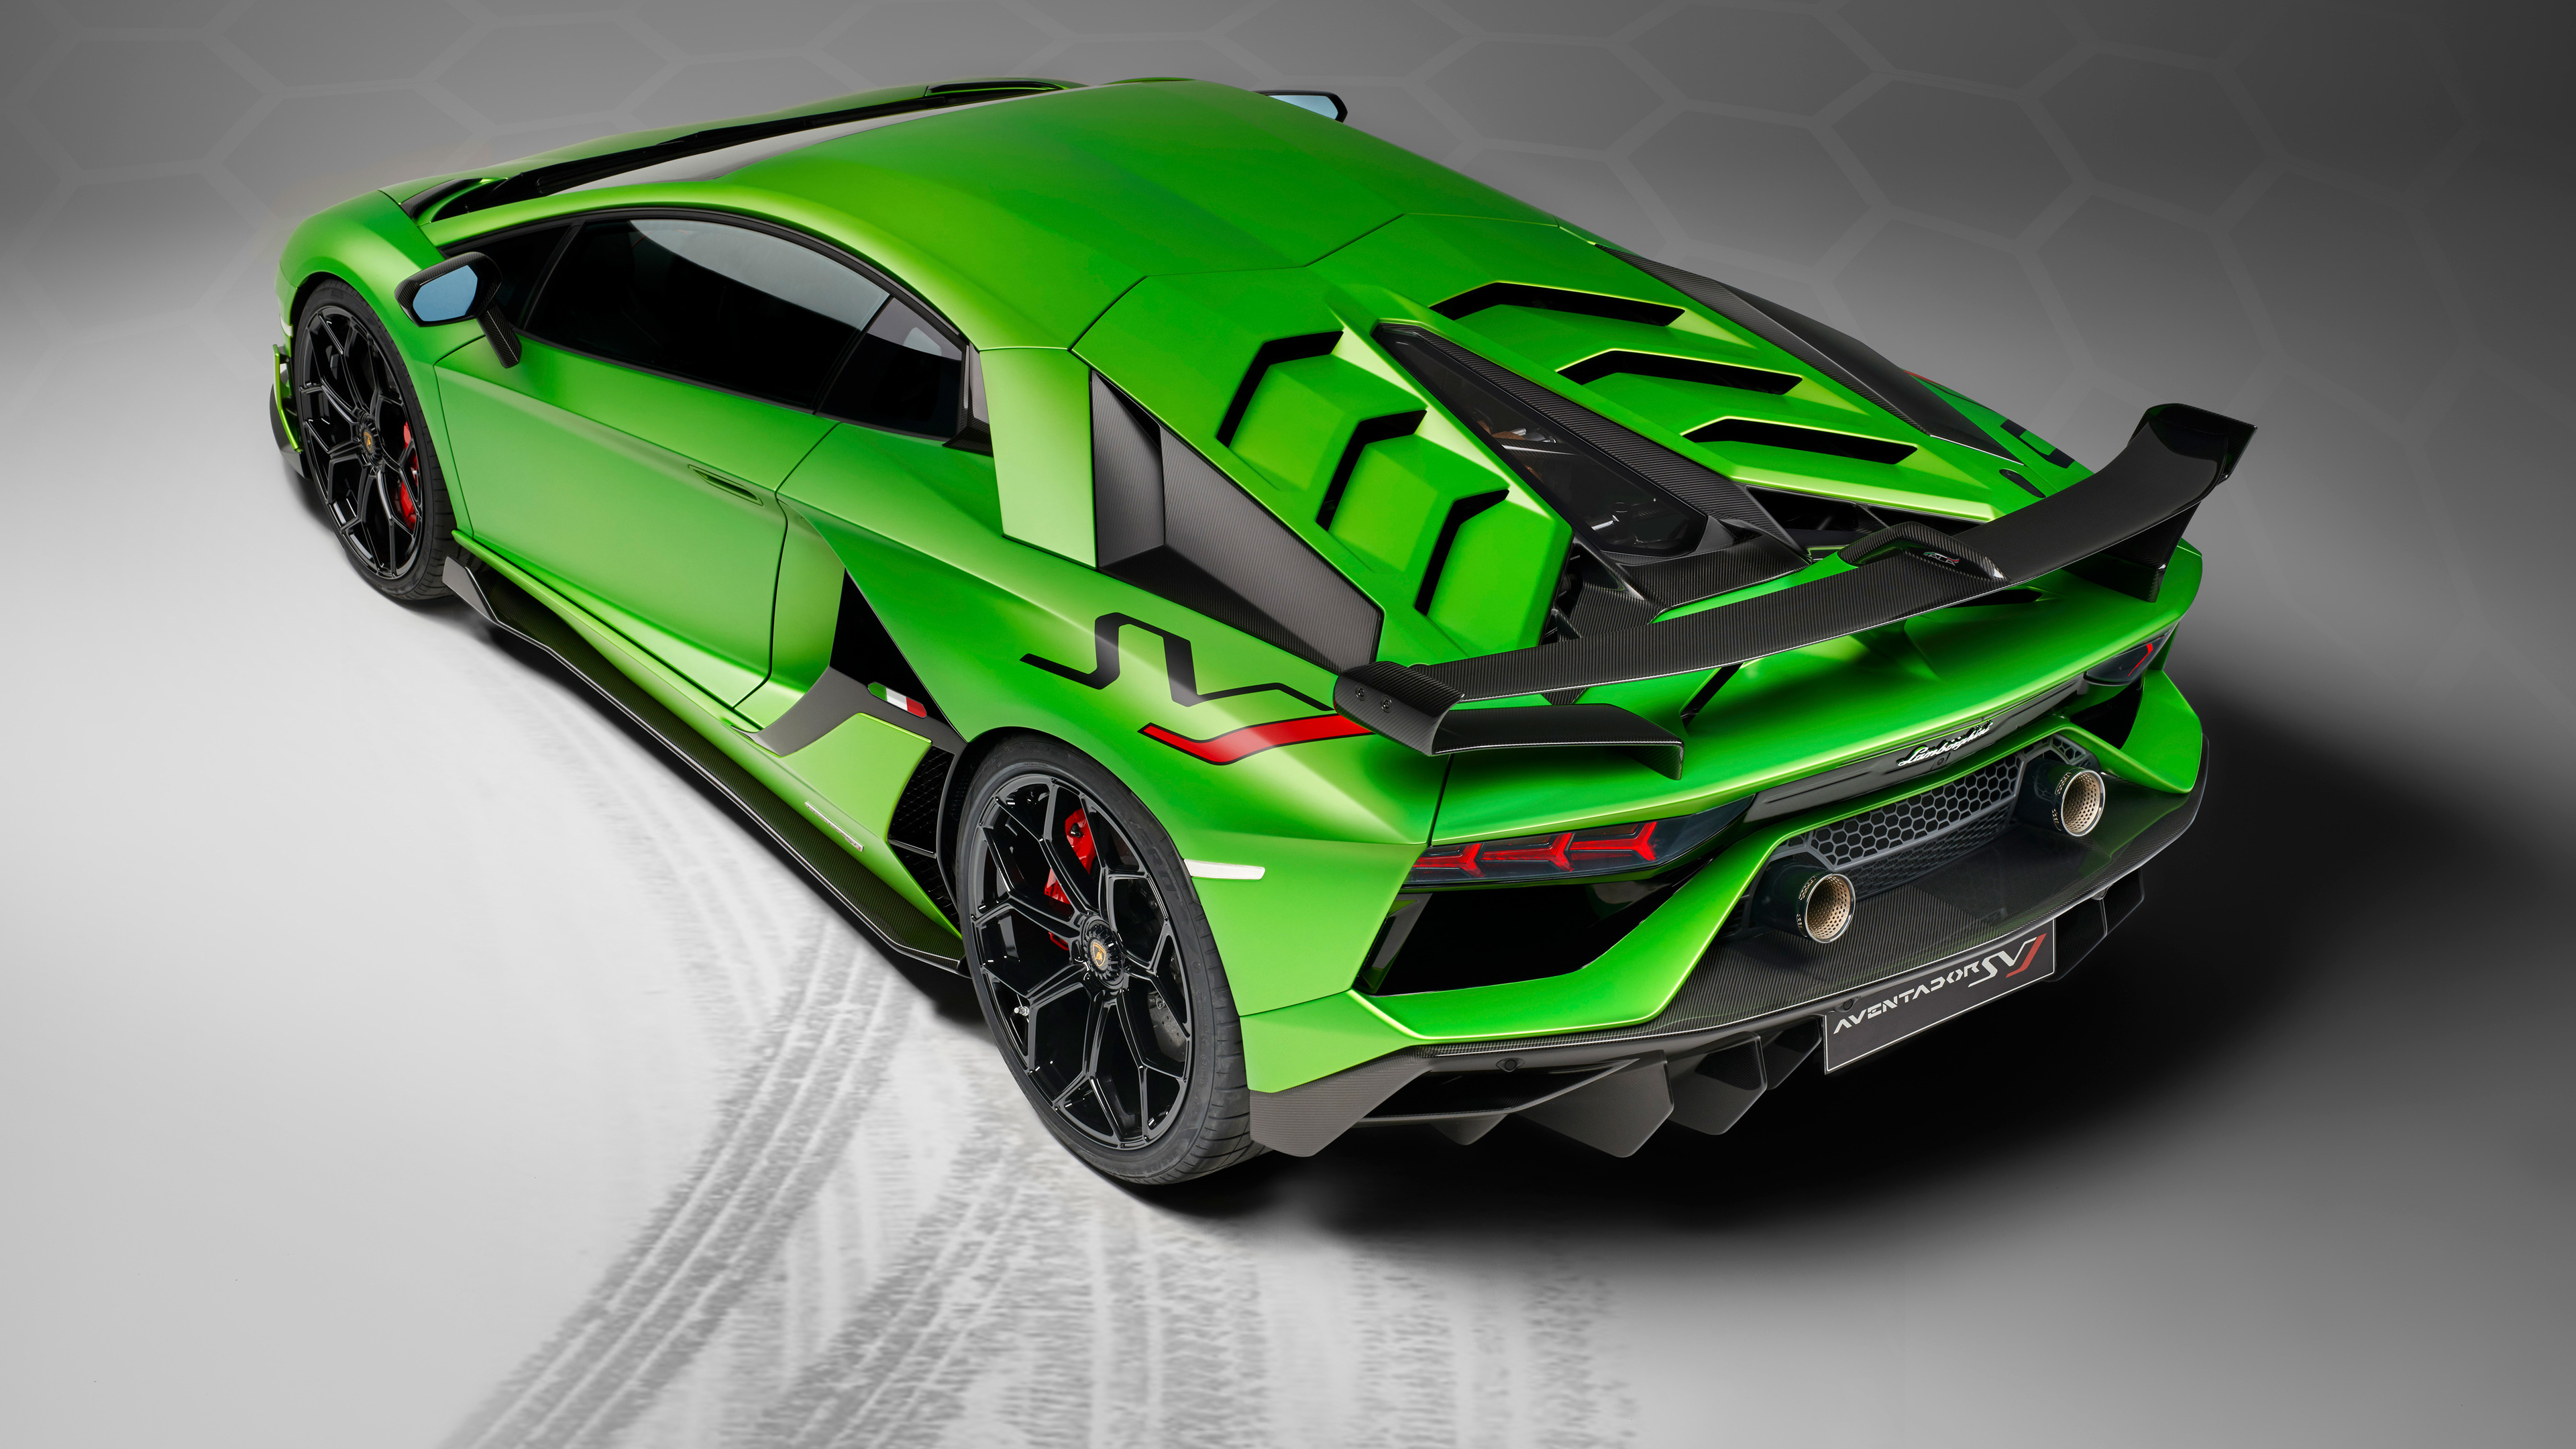 Wallpaper 4k 2018 Lamborghini Aventador Svj Rear Upper View 2018